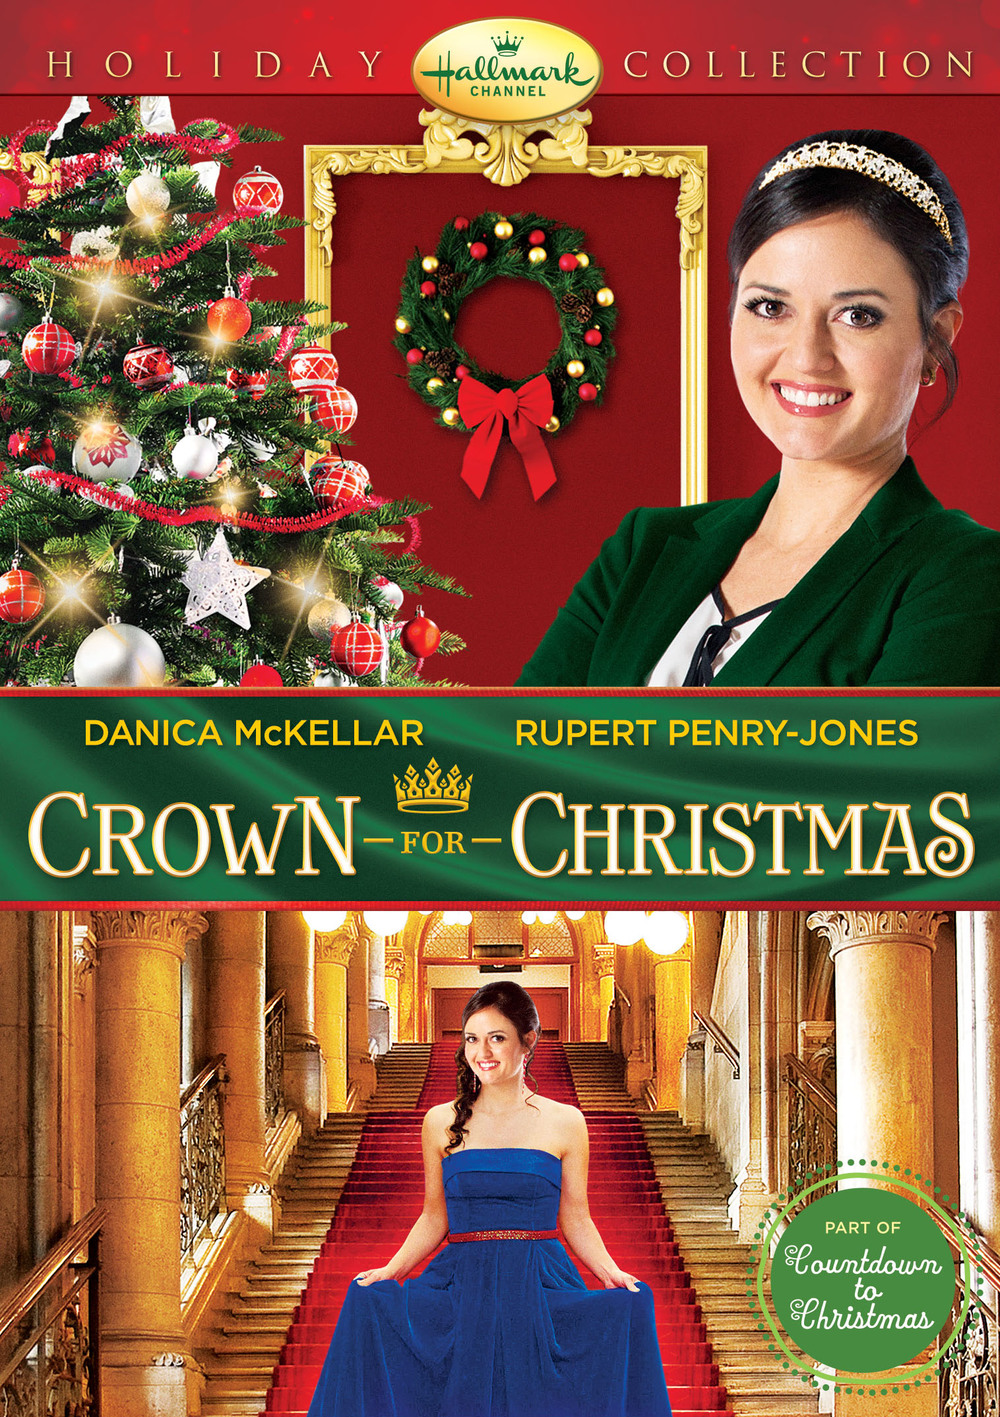 Hallmark's Holiday Collection DVDs